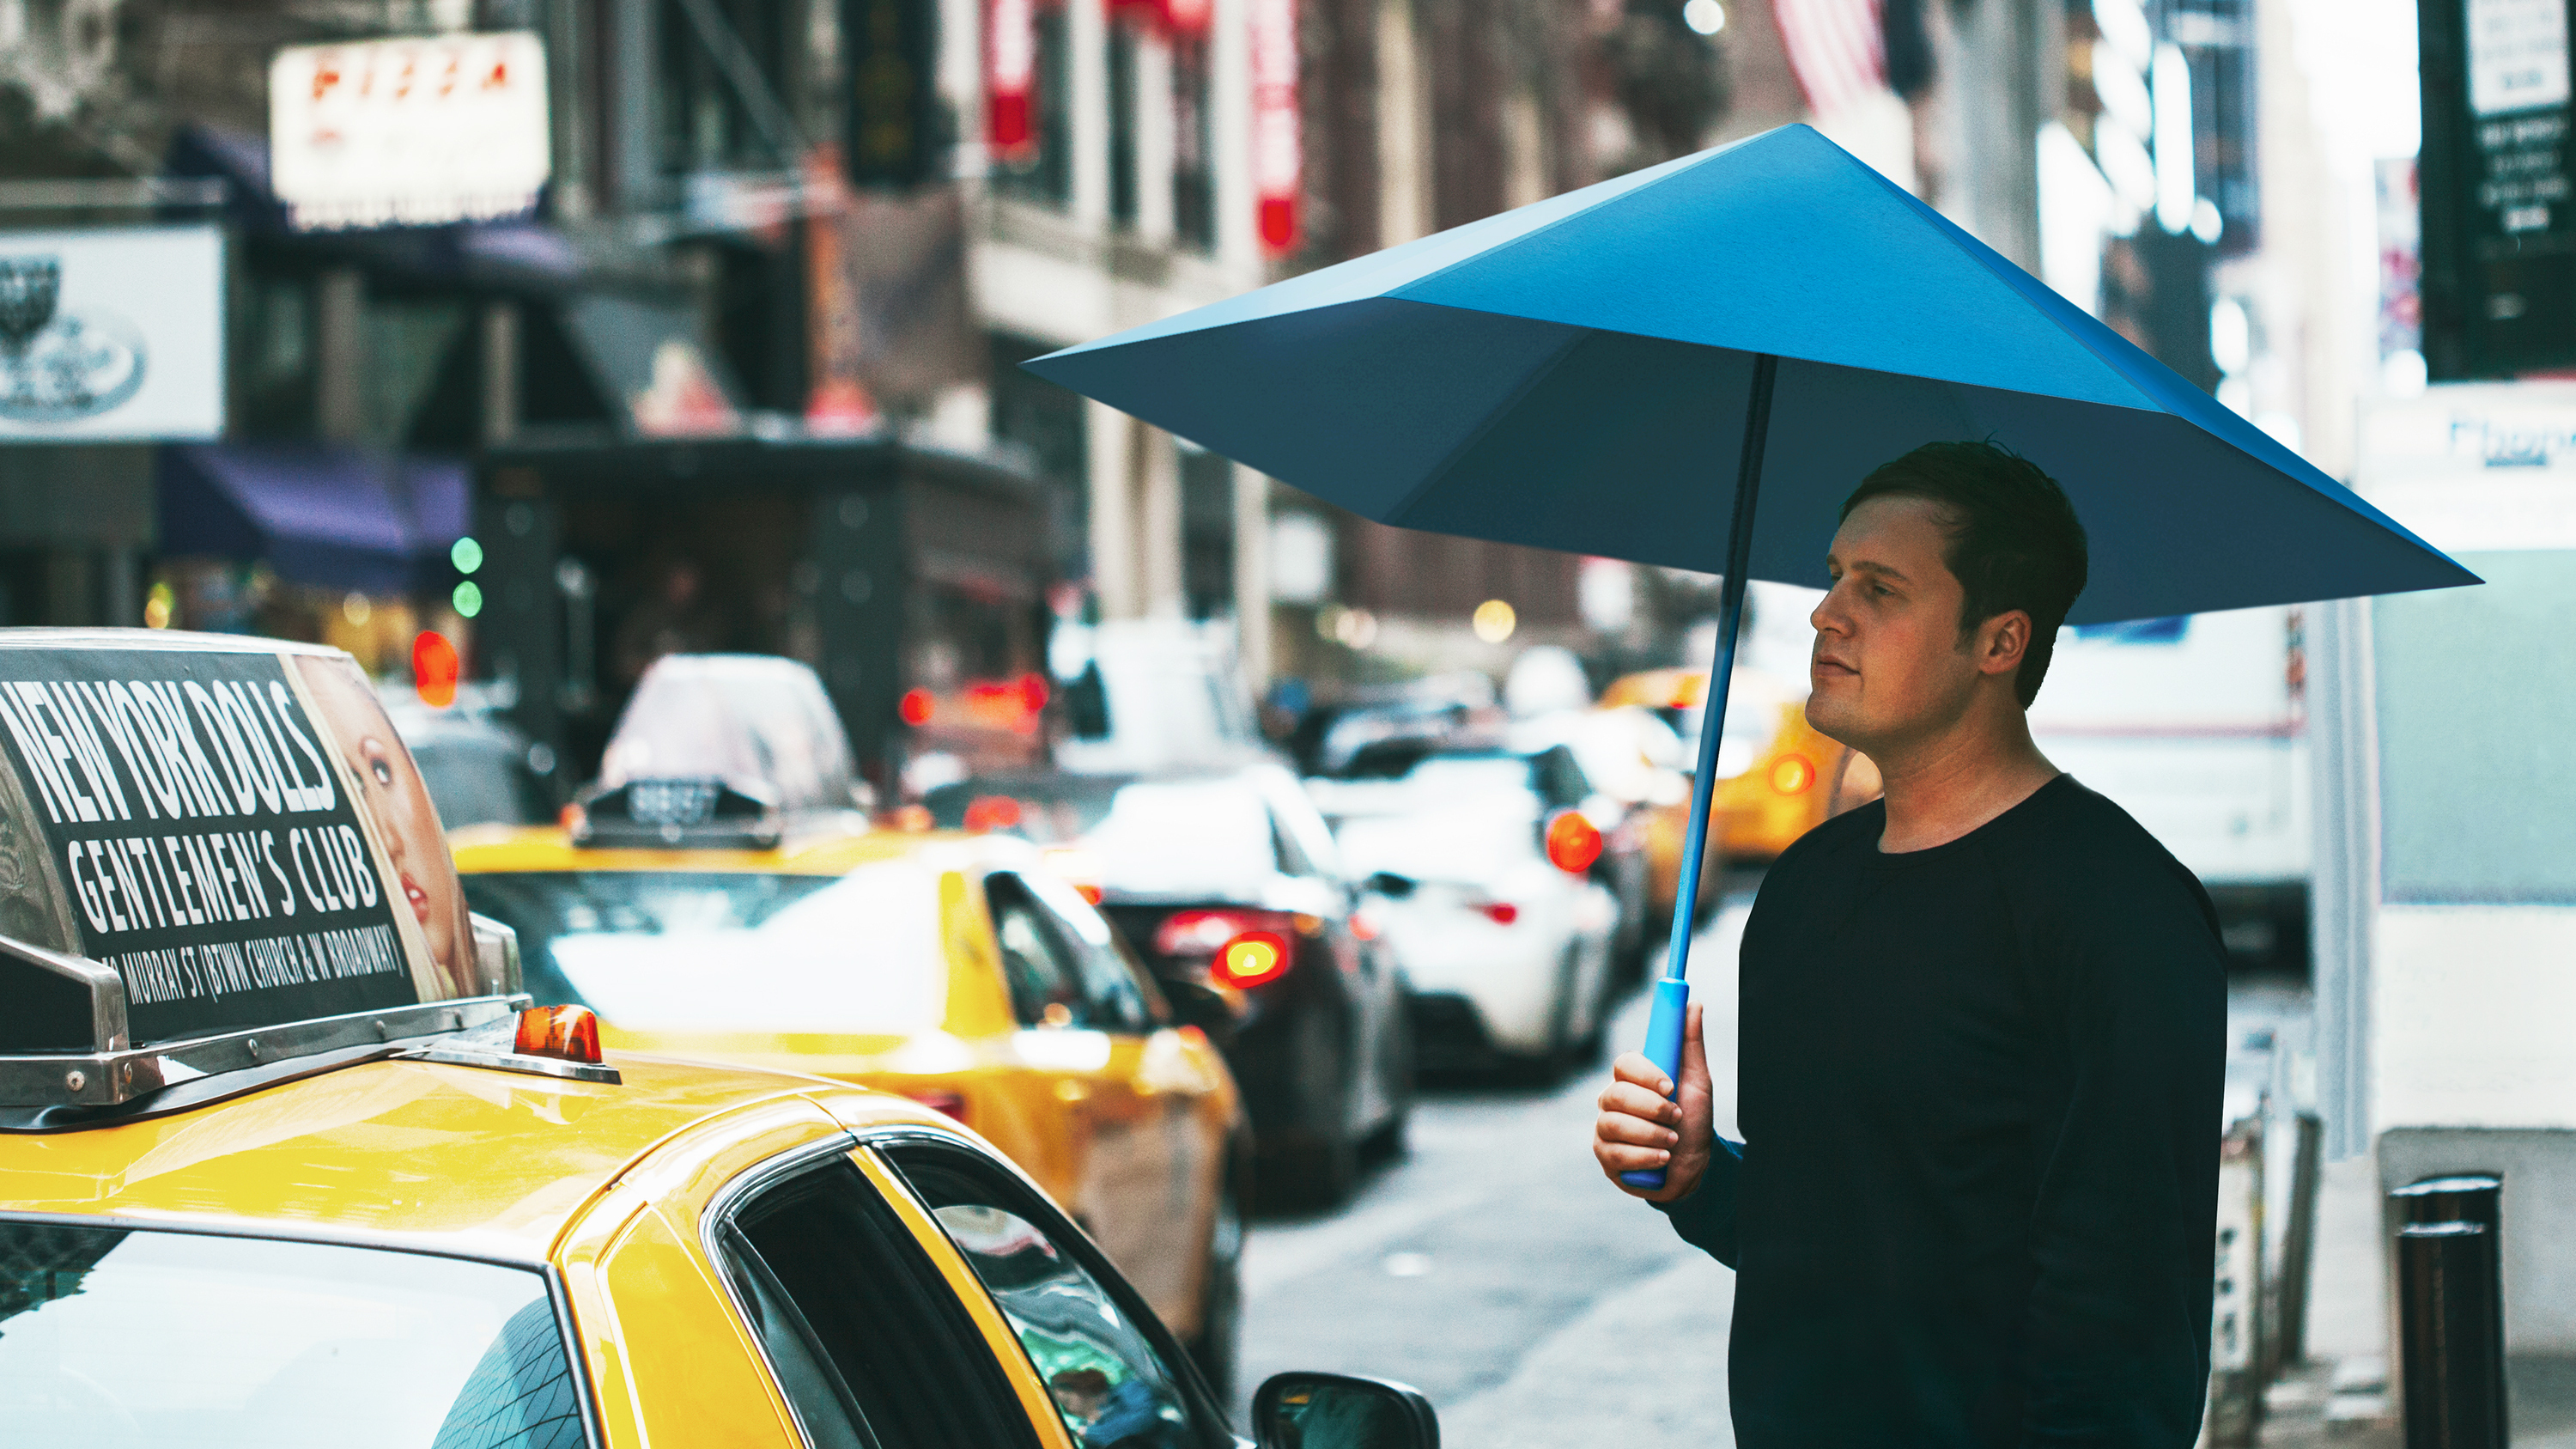 Weekly Innovation: An Umbrella For The Modern Age